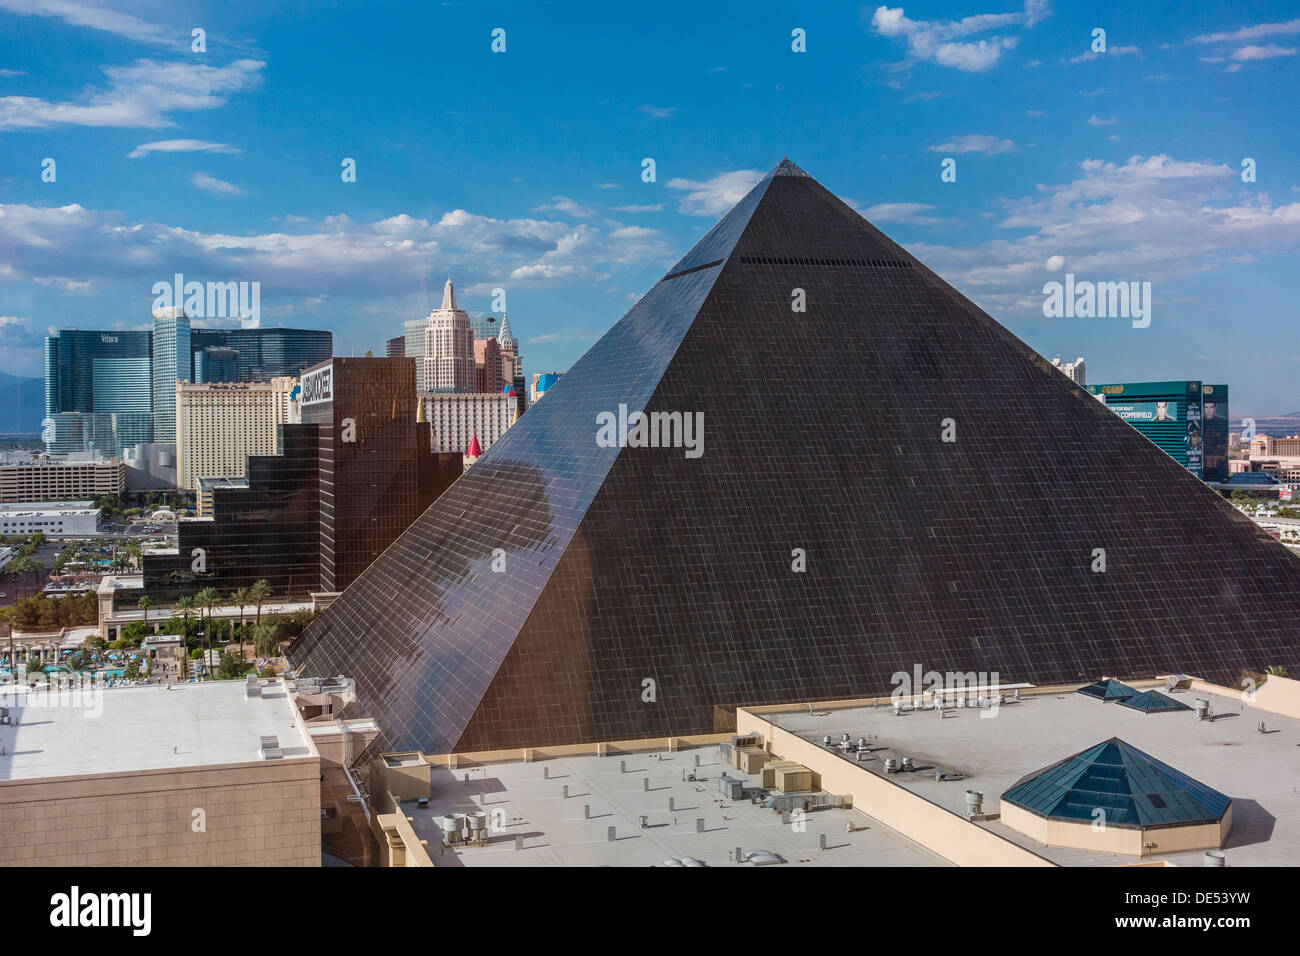 A view of some of the Las Vegas hotels on the \